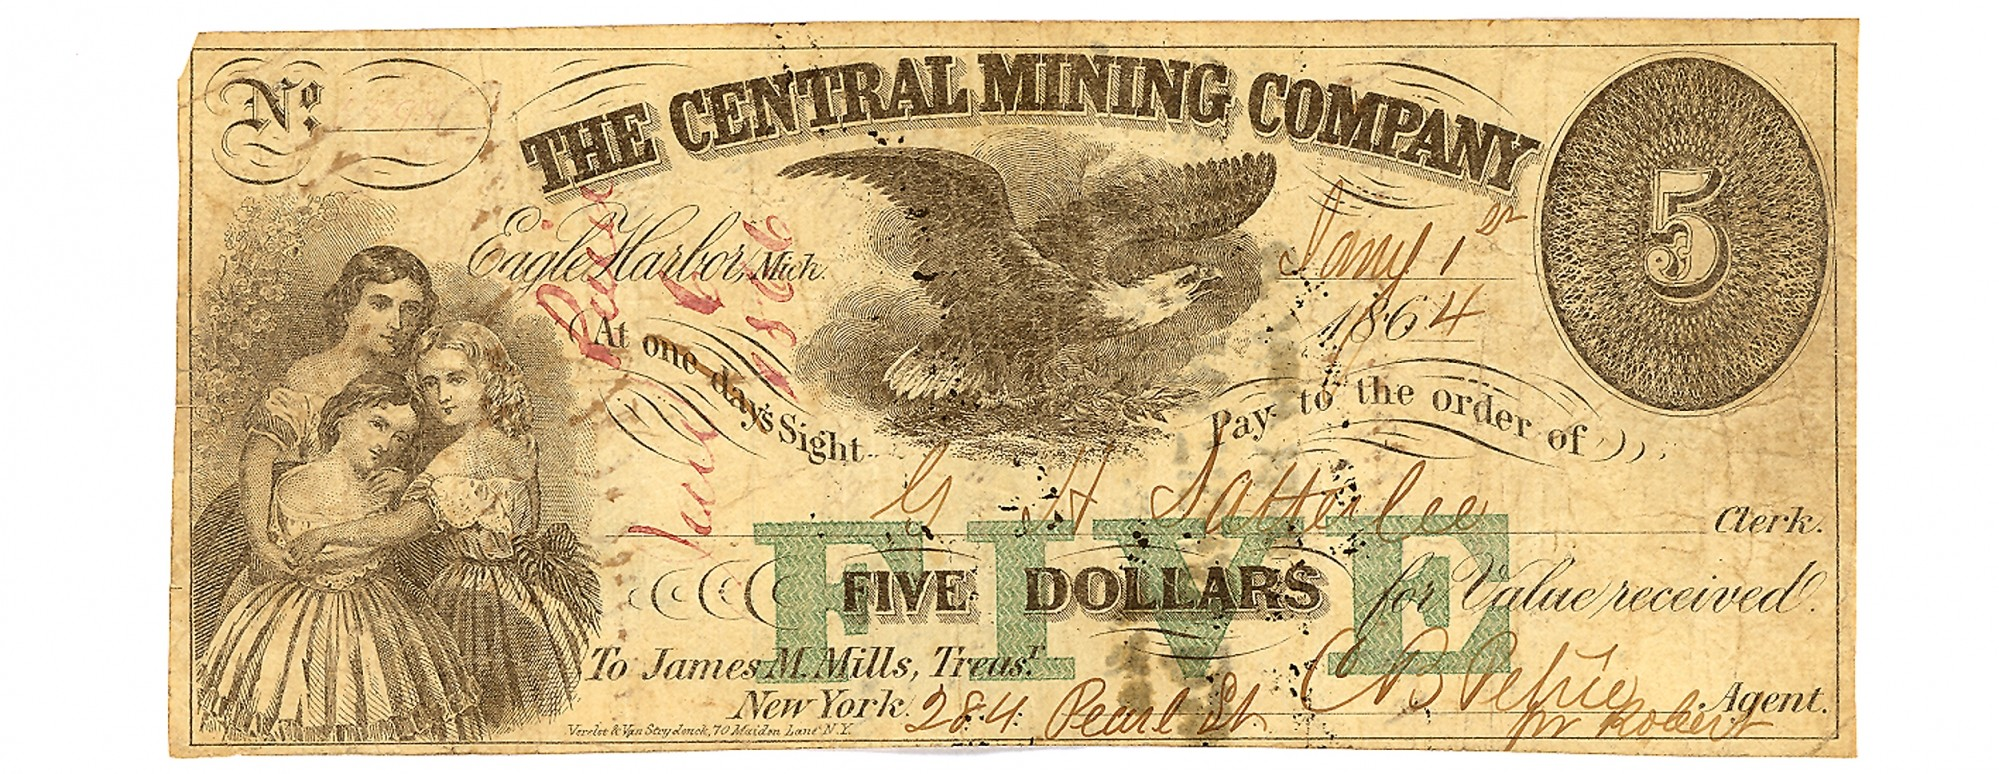 THE CENTRAL MINING COMPANY, EAGLE HARBOR, MICHIGAN $5 NOTE